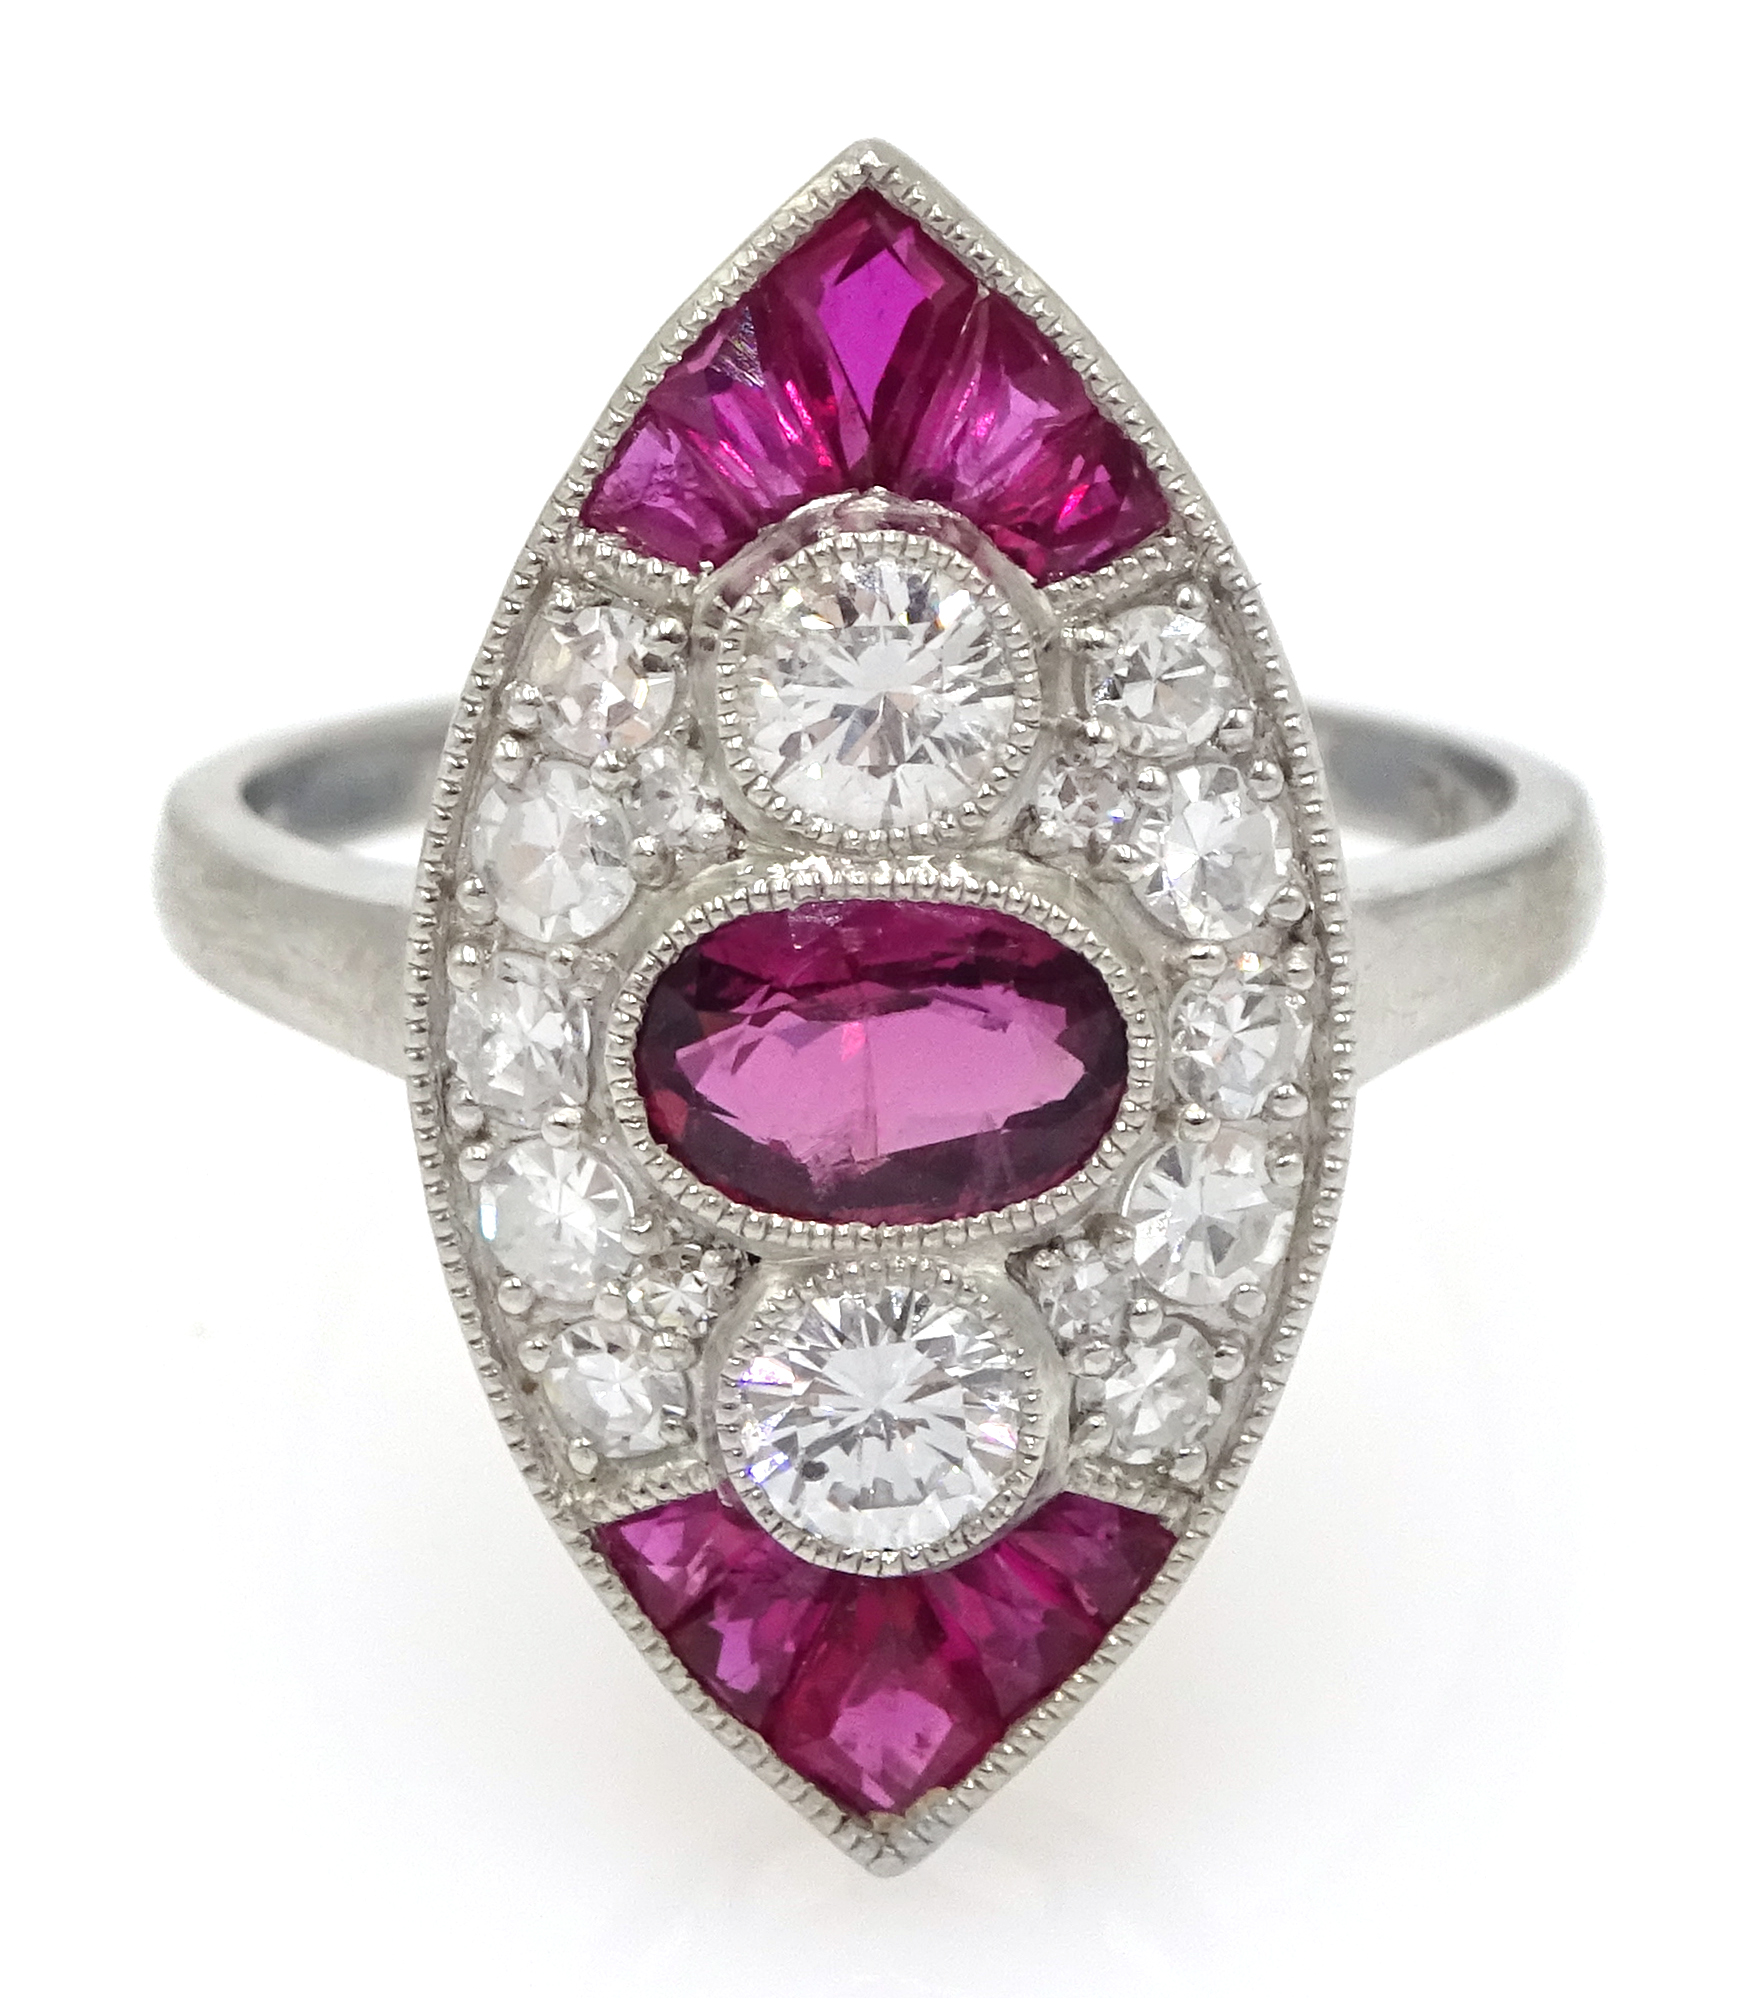 Victorian style marquise shaped platinum ring